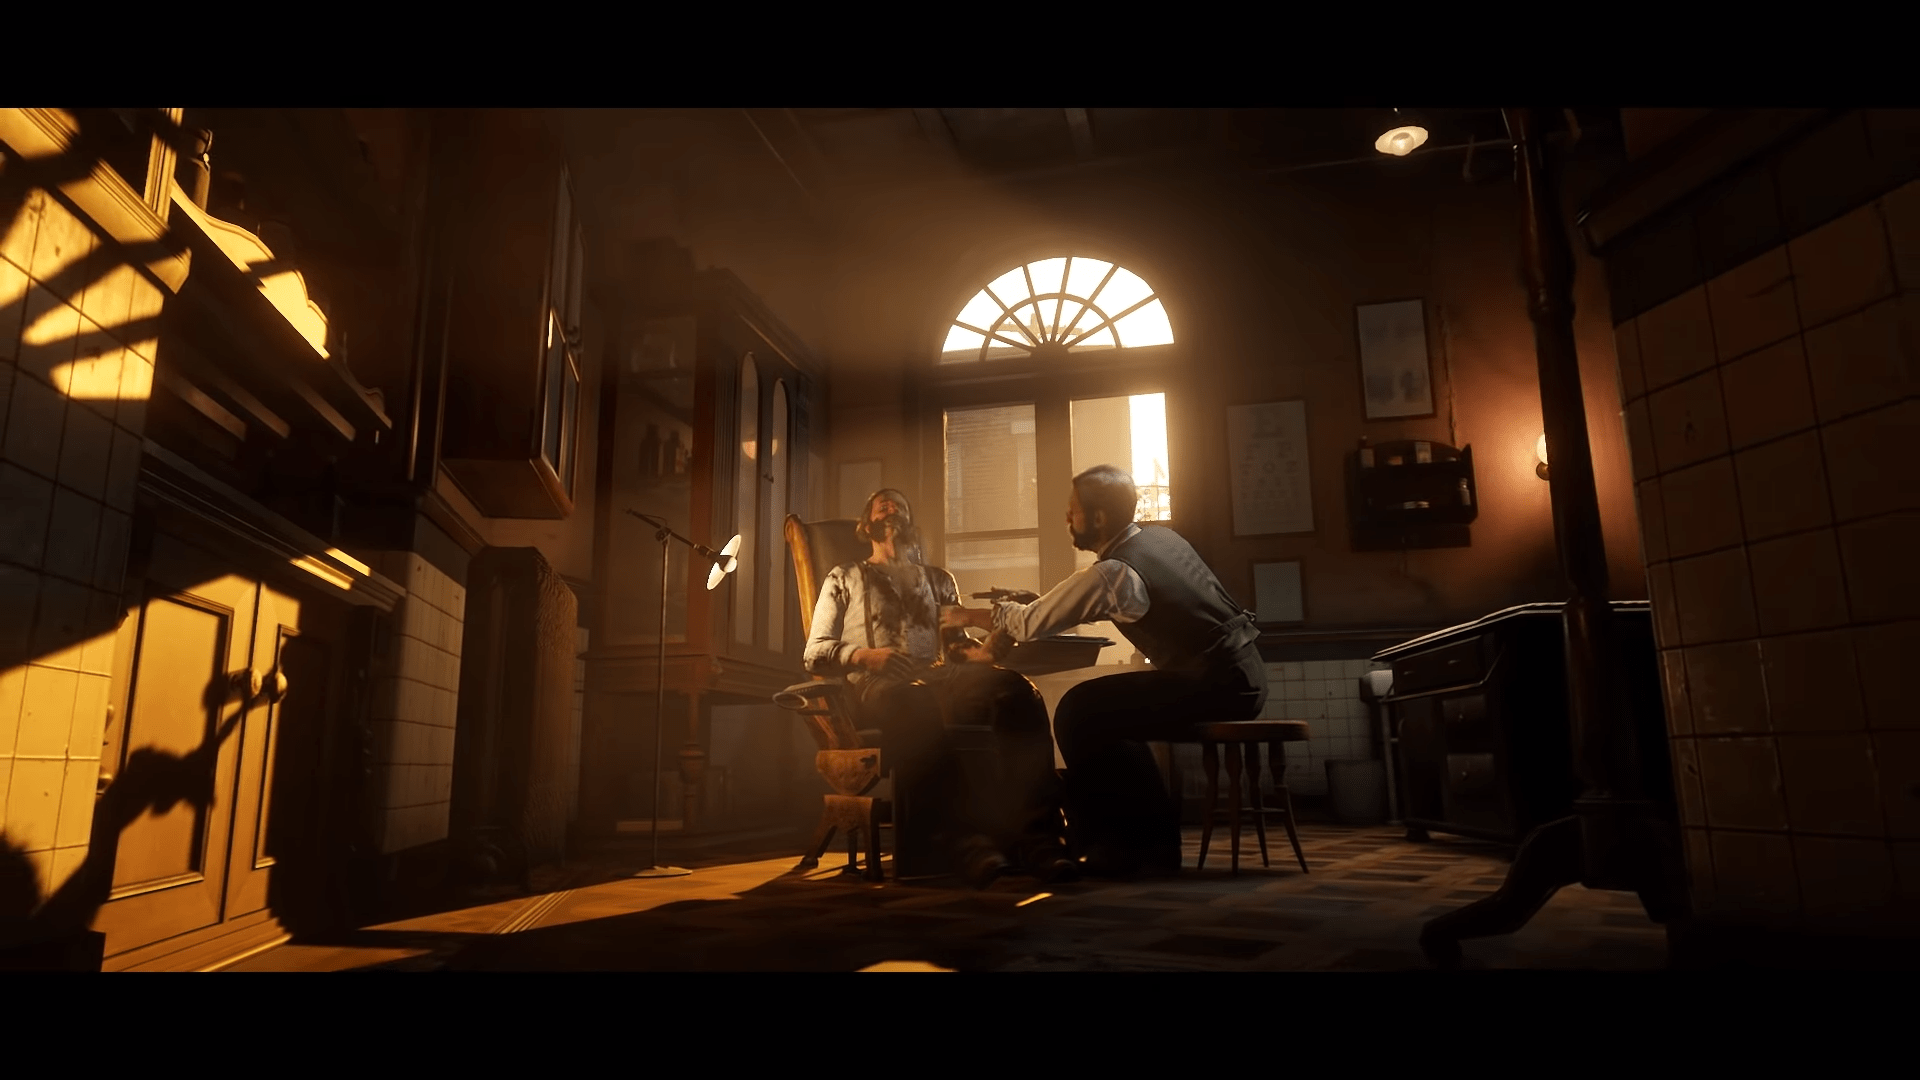 There Is One Platform Where PC Gamer's Can Review Red Dead Redemption 2, And It Isn't Pretty